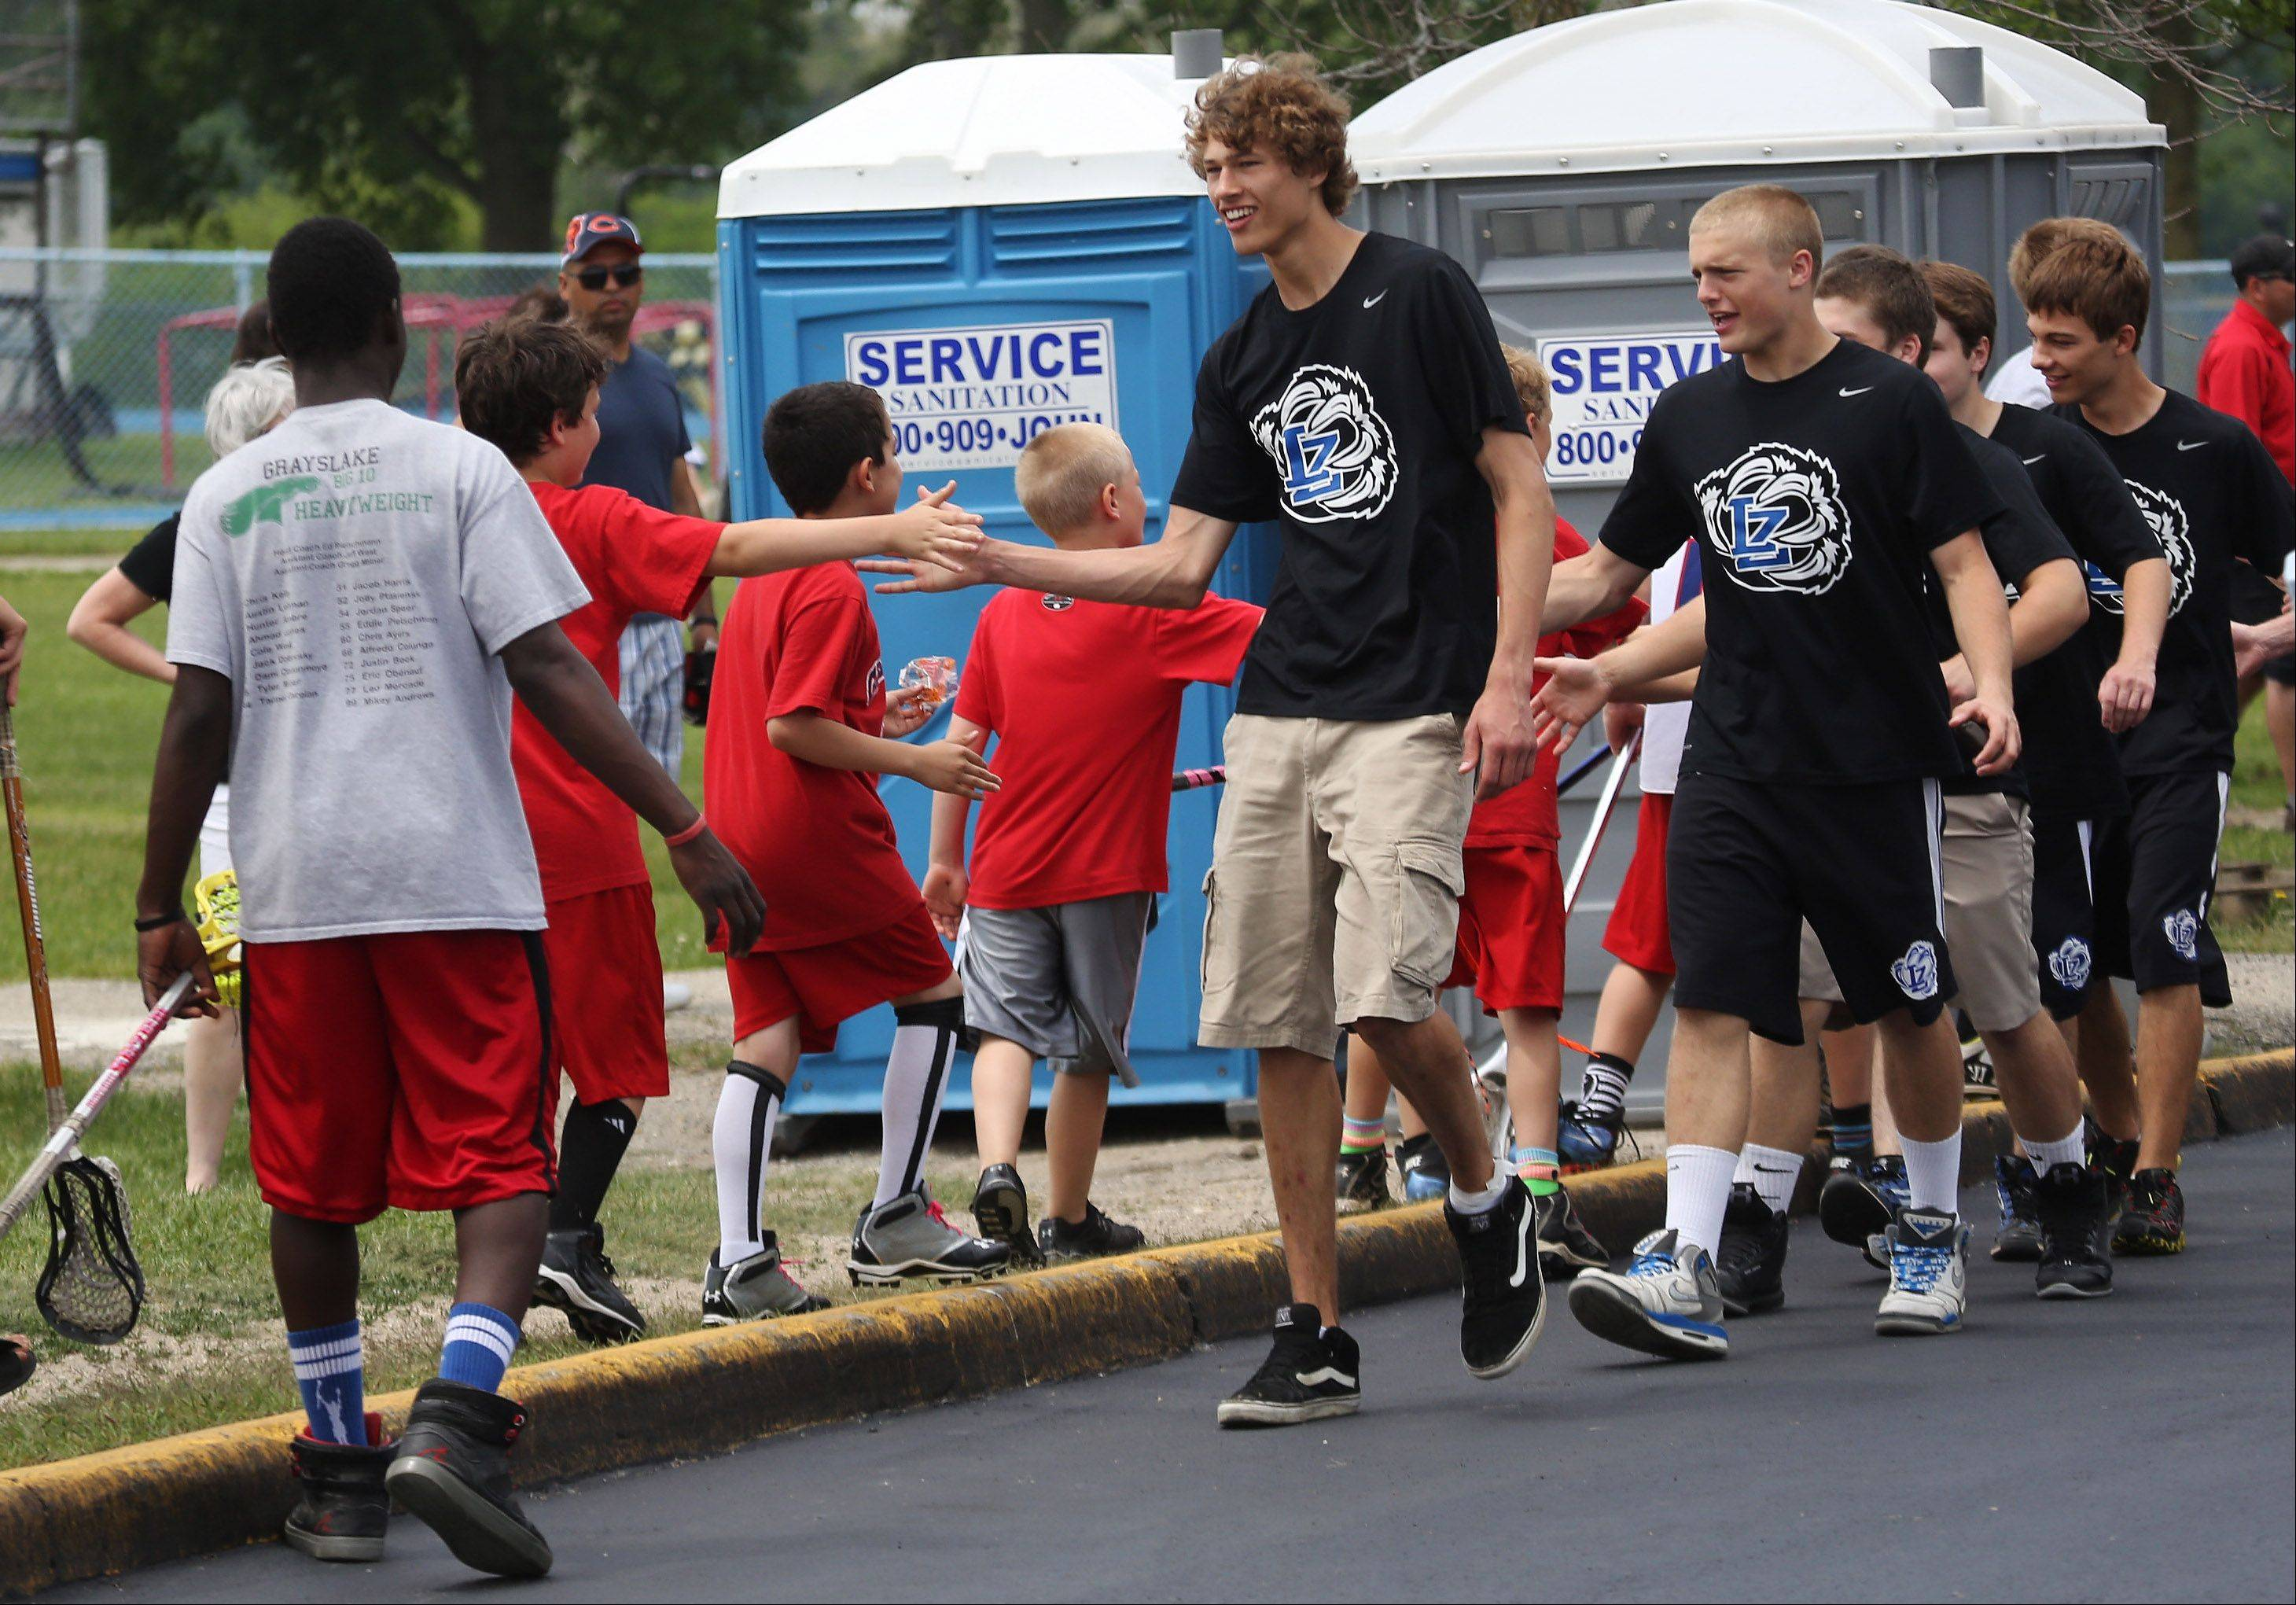 Parker Brown, left, and Travis Lores join other members of the Lake Zurich High School lacrosse team in shaking hands with kids along the parade route Sunday during a rally at the school after their team won the Lacrosse Cup state championship.